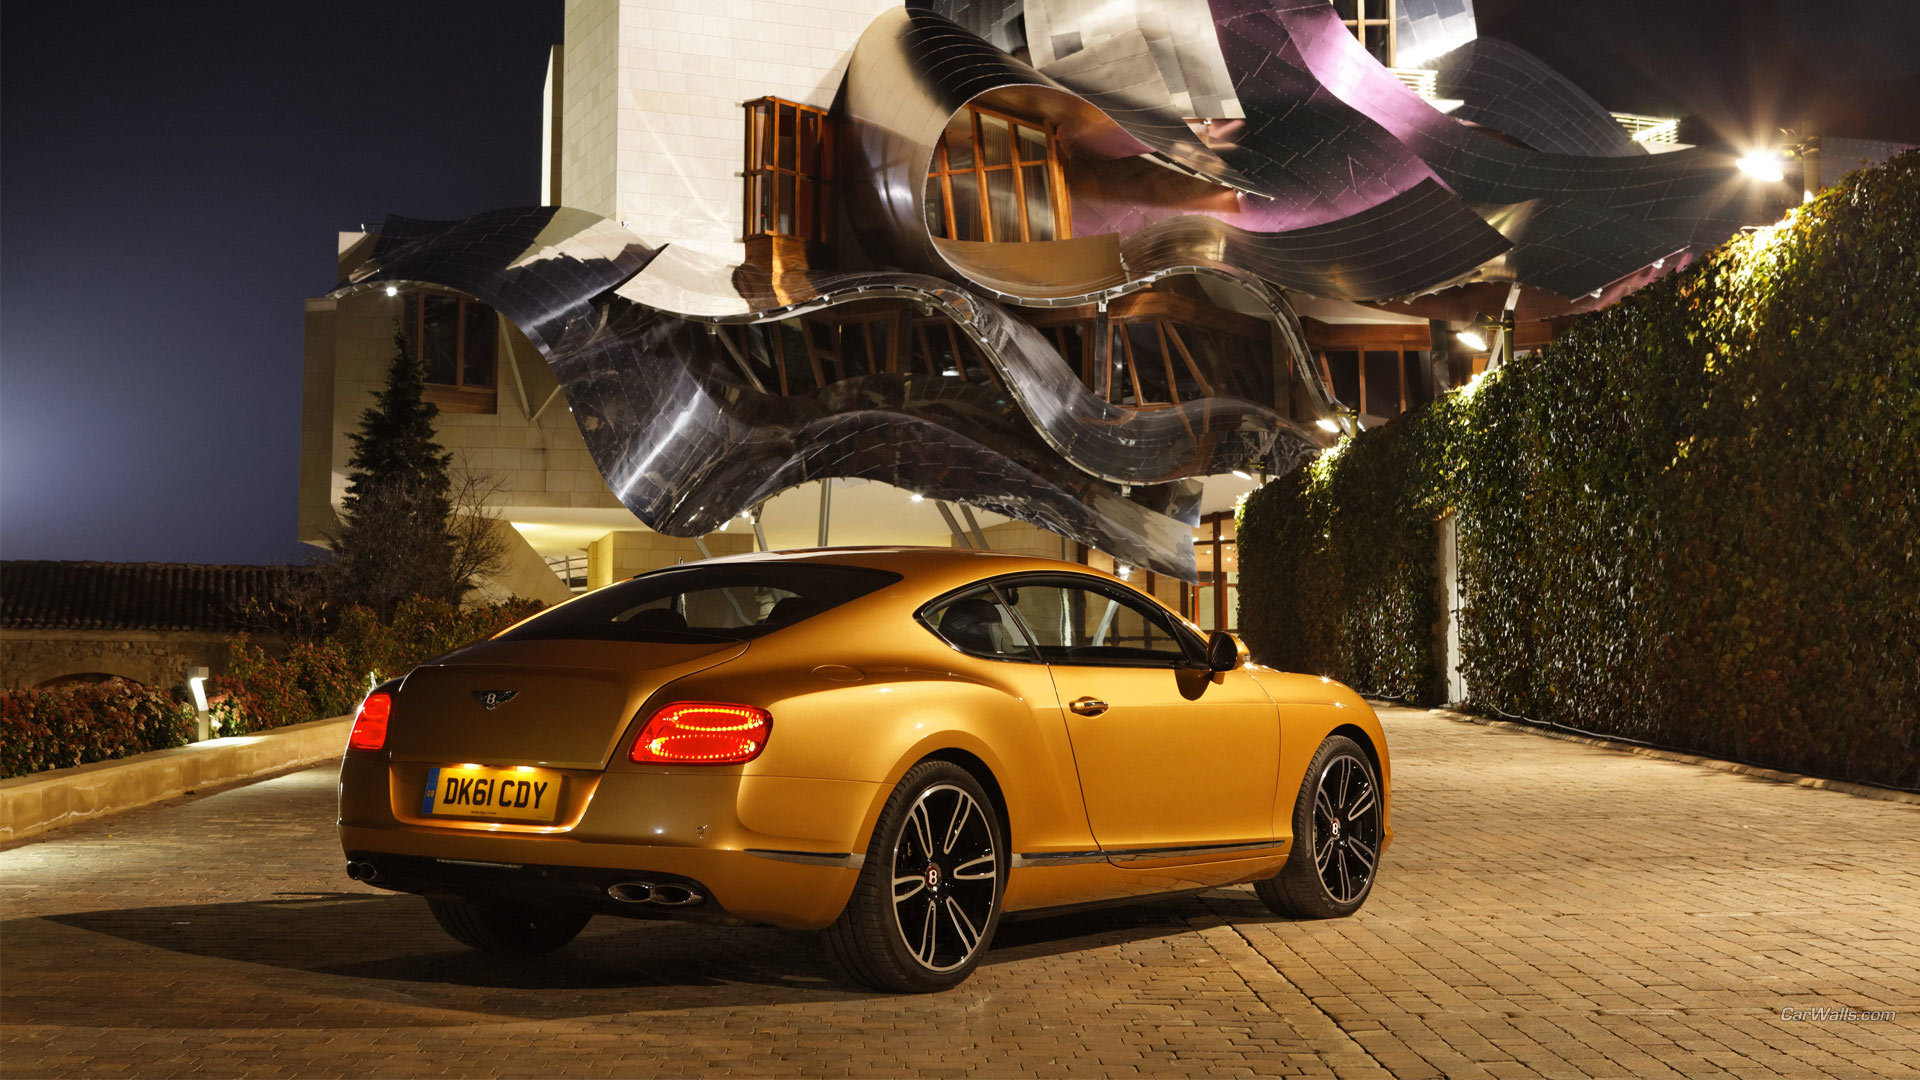 High resolution Bentley Continental GT full hd 1080p background ID:465160 for desktop